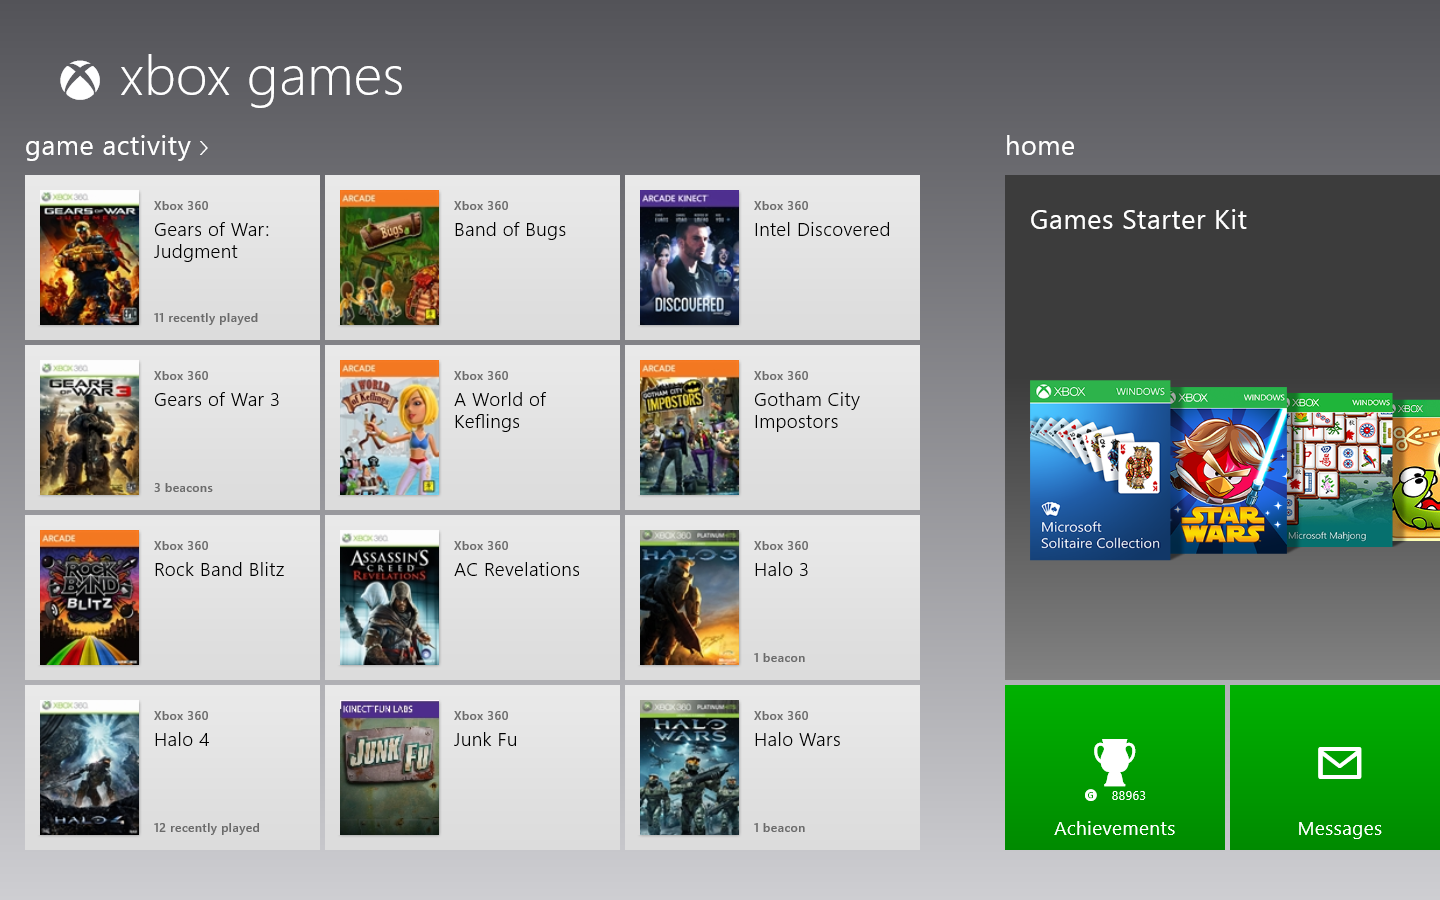 Xbox Games and SmartGlass apps receive updates